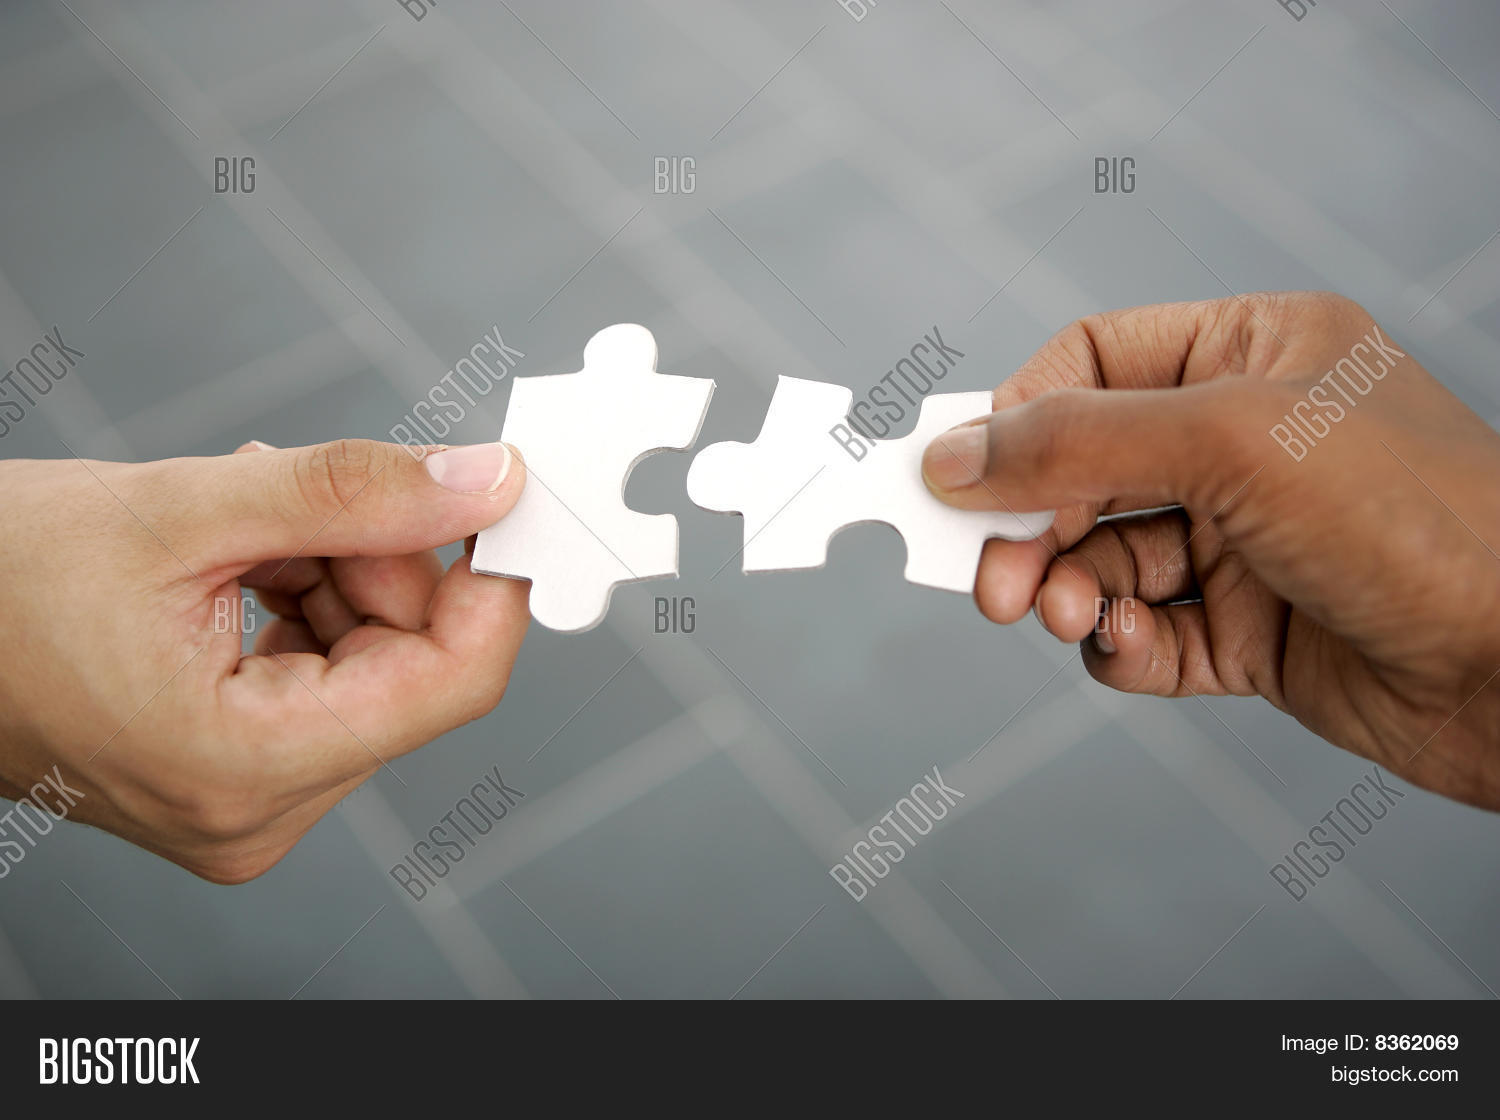 Hands Puzzle Pieces Image & Photo (Free Trial) | Bigstock